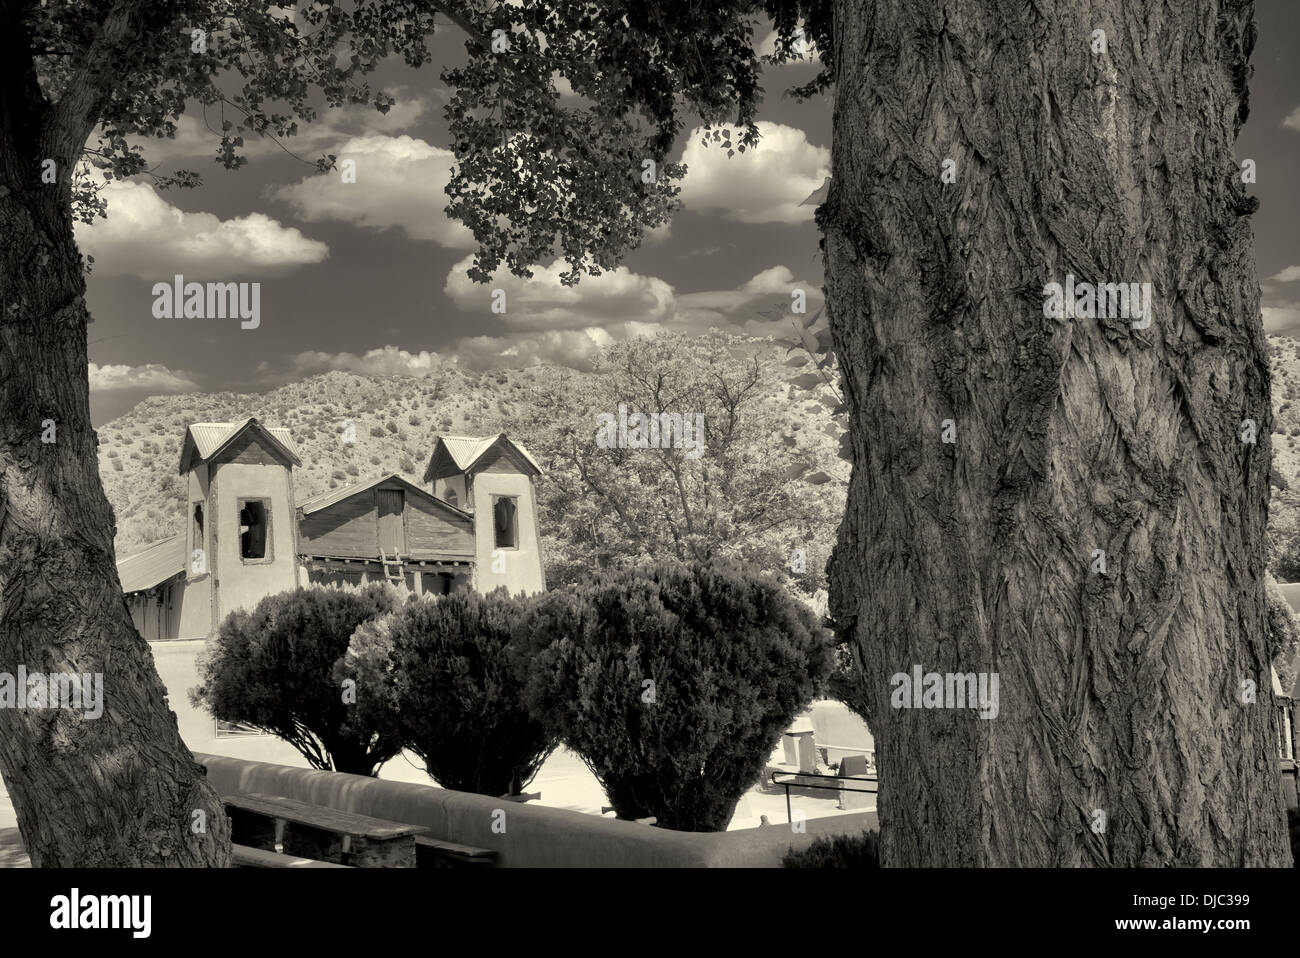 Santuario de Chimayó église. Chimayo, Nouveau Mexique Photo Stock